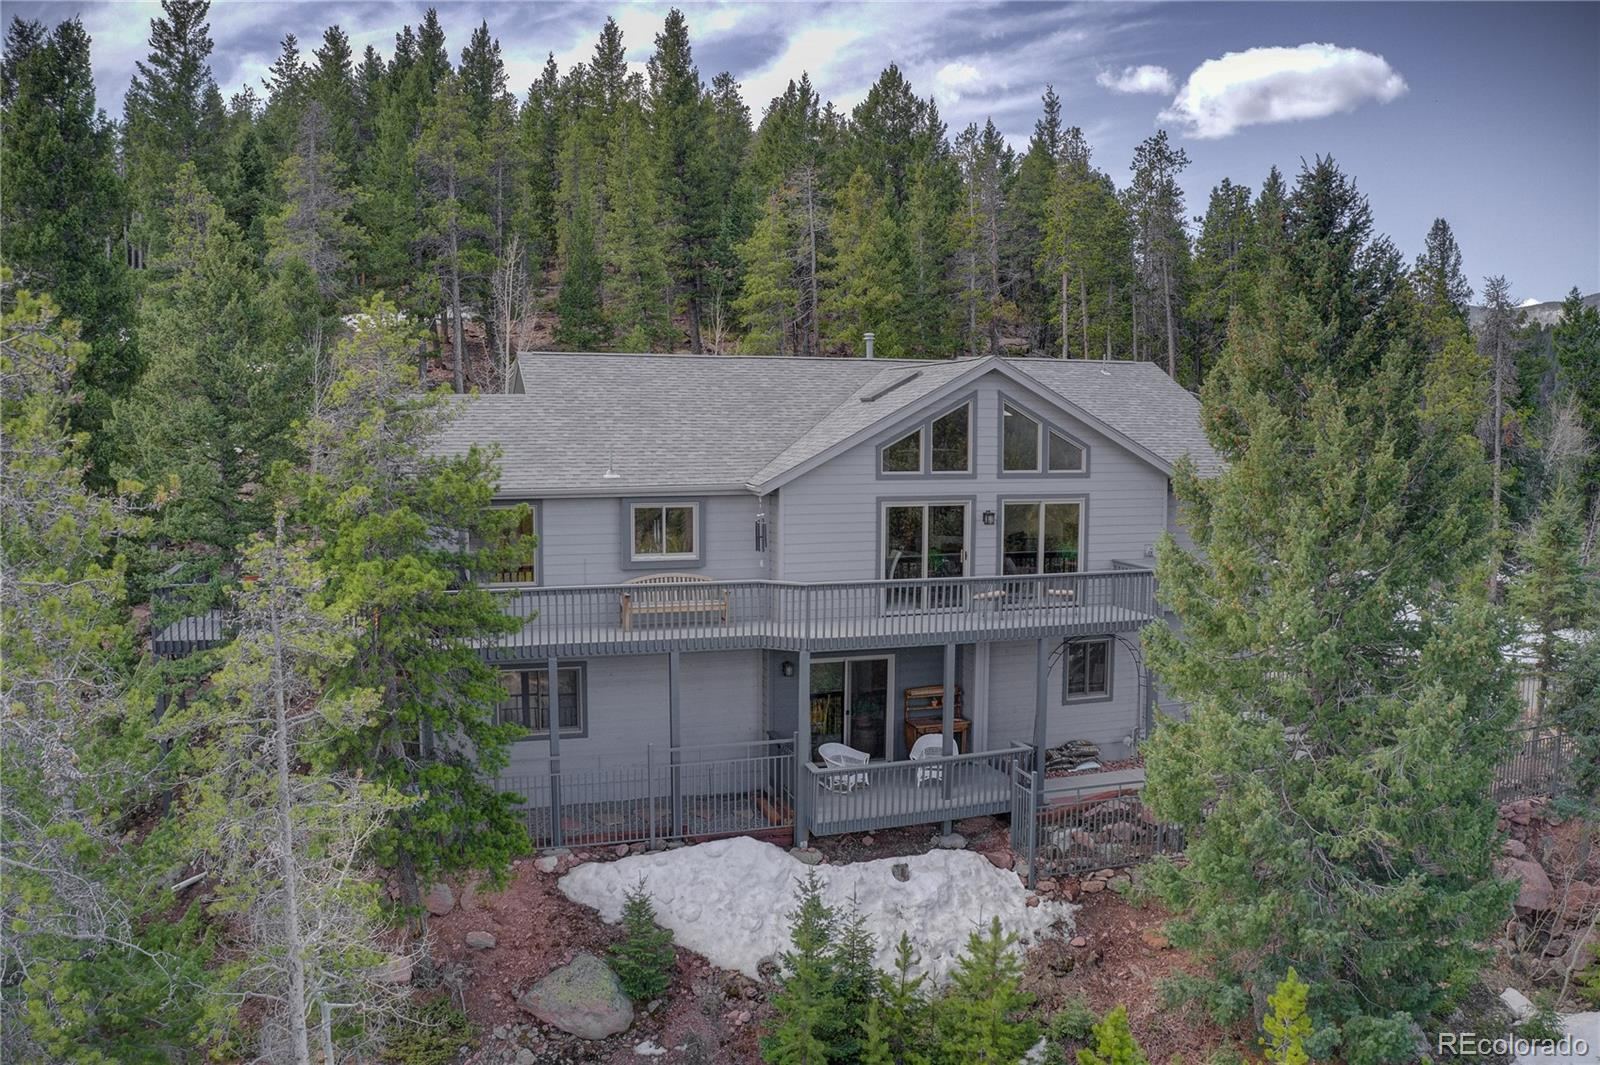 6882 Snowshoe Trail, Evergreen, CO 80439 - #: 7928802